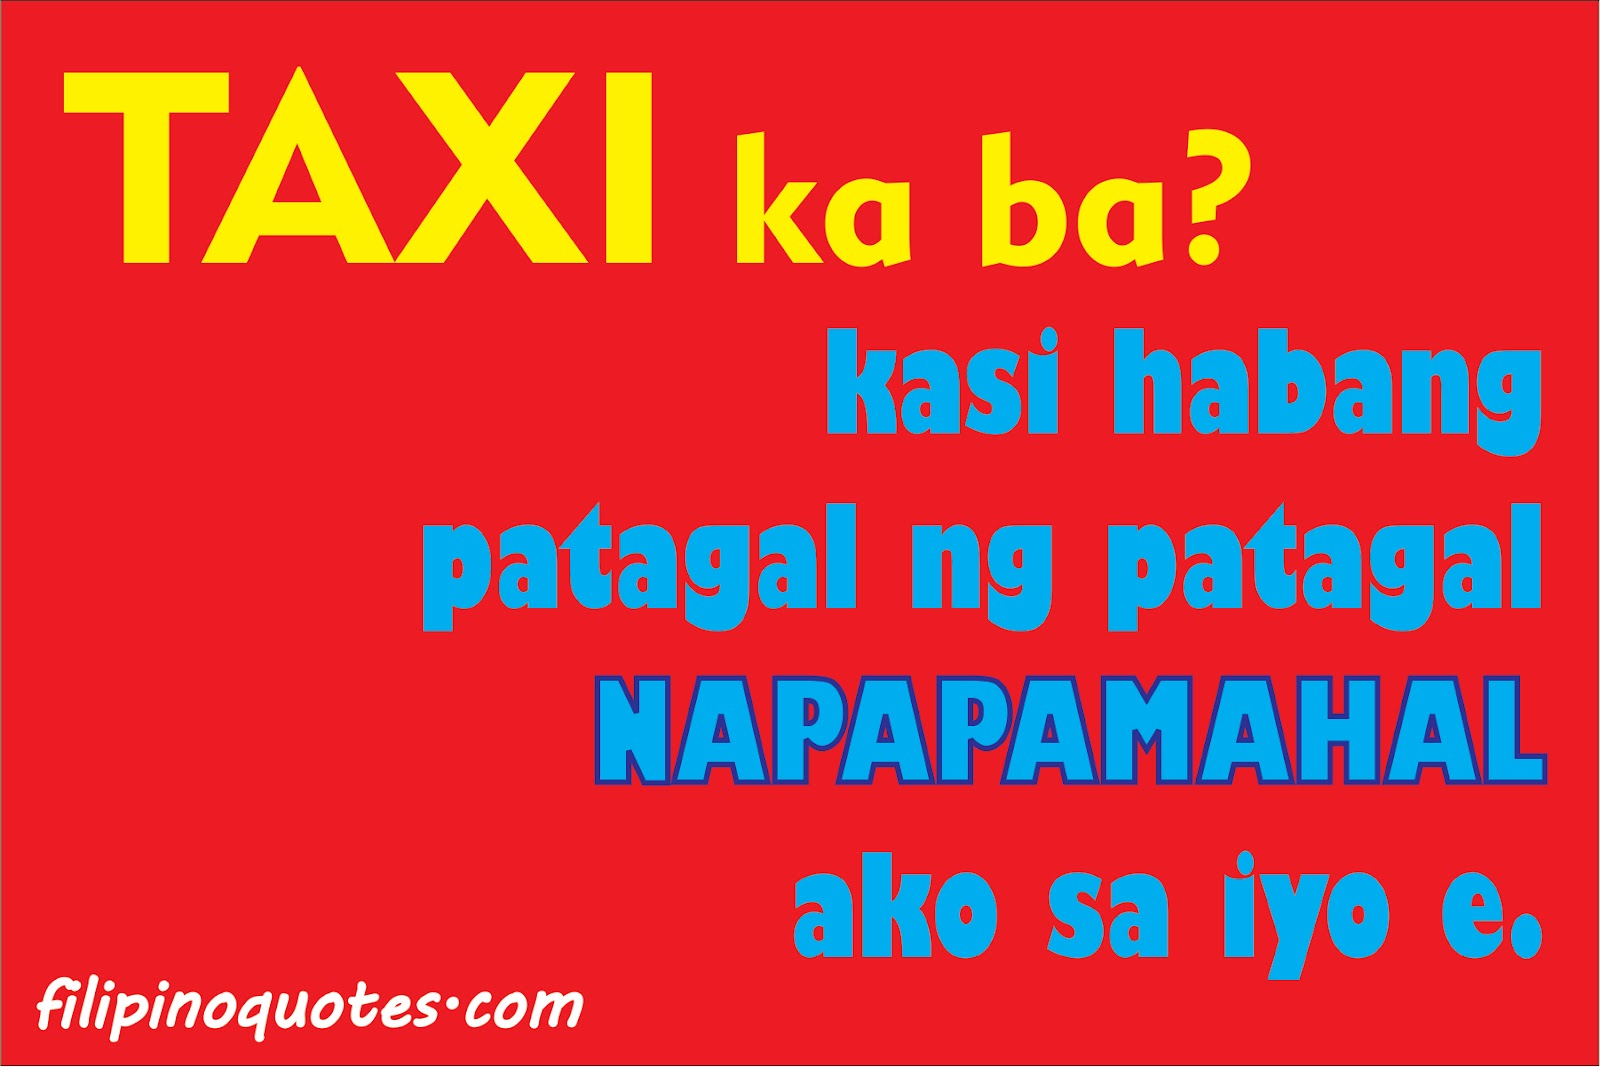 Cheesy Pinoy PickUp Lines (May 2012) - Tagalog Love Quotes